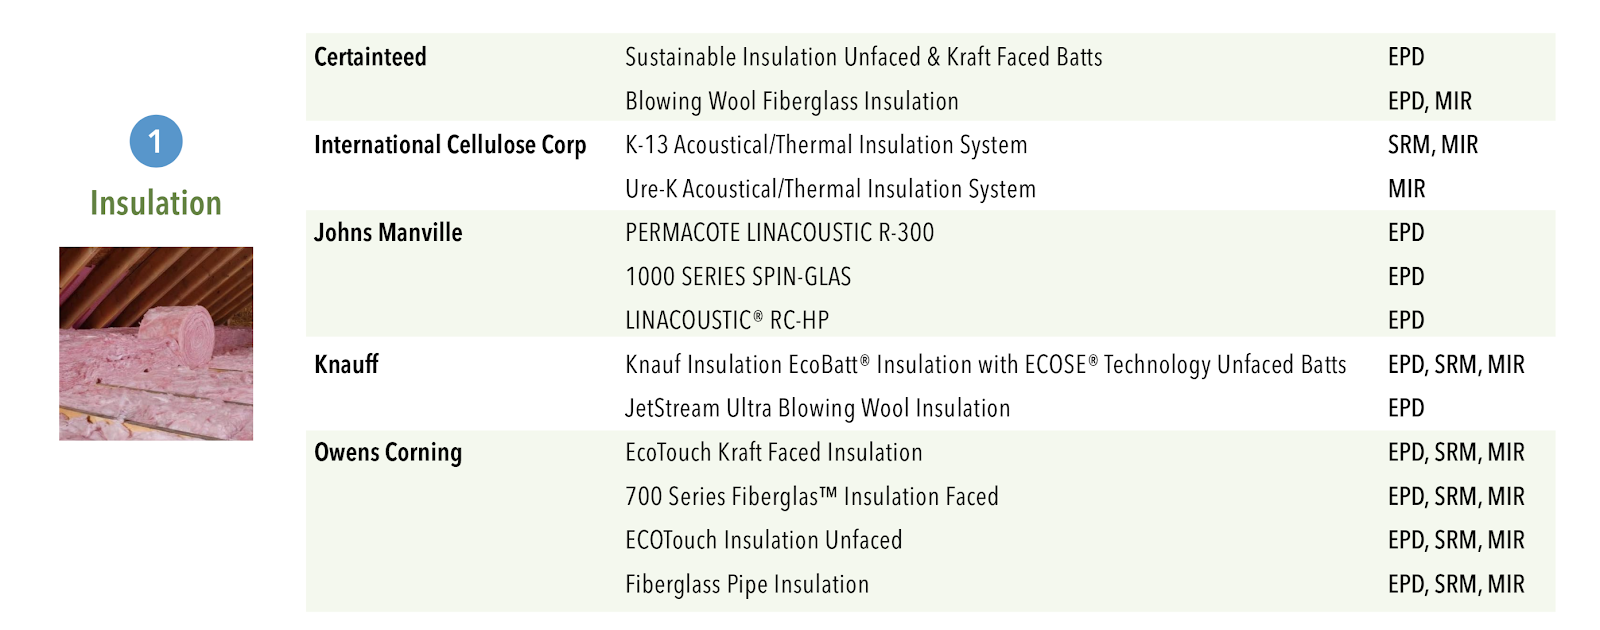 MRc2 LEED compliant insulation products LEED v4